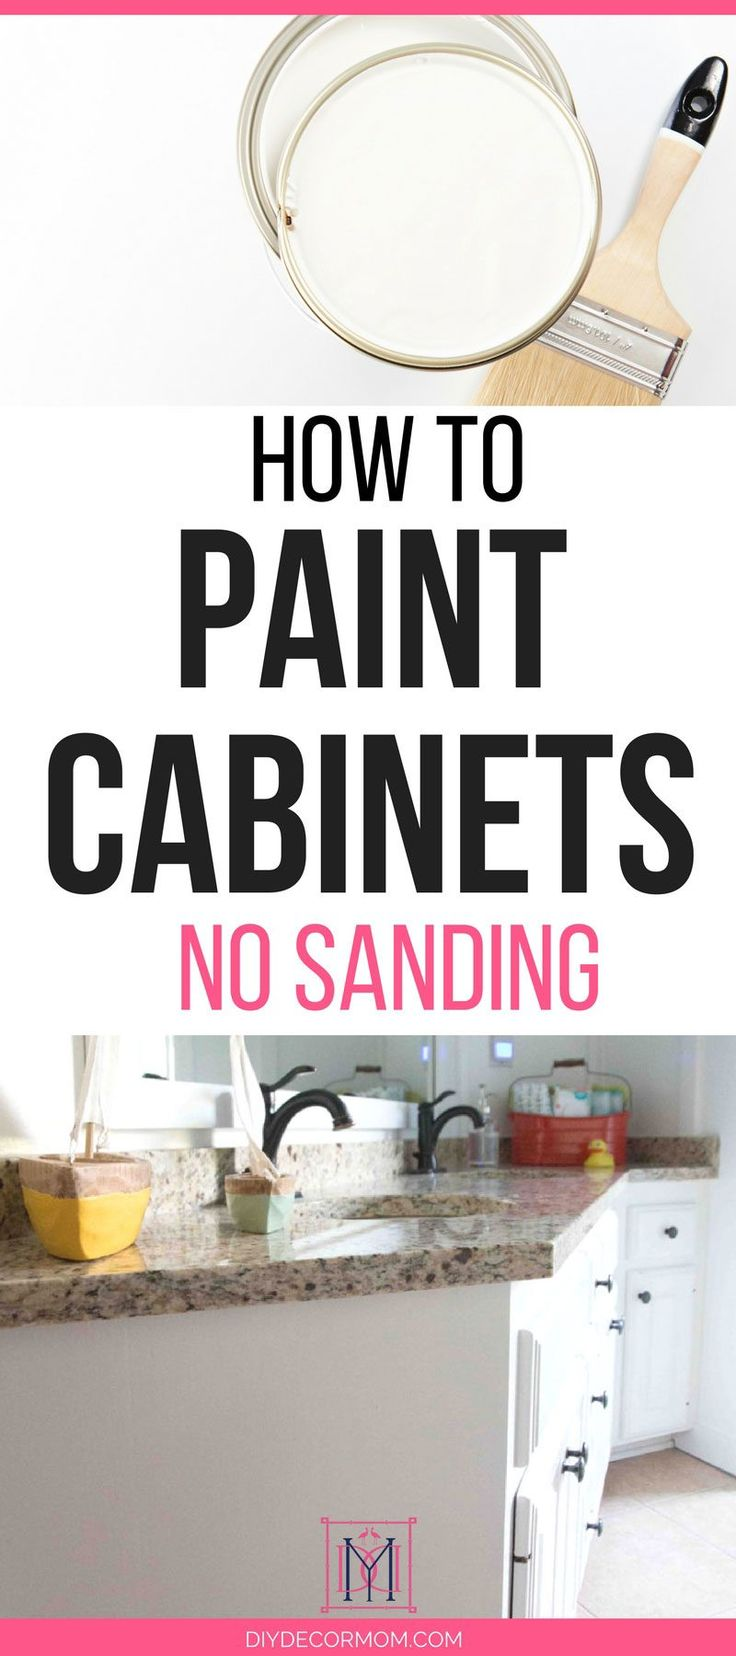 how to paint bathroom cabinets with no sanding! Before you paint your cabinets, read why you shouldn't sand them! Plus see the secret tips to getting a flawless finish by home decor blogger DIY Decor Mom!